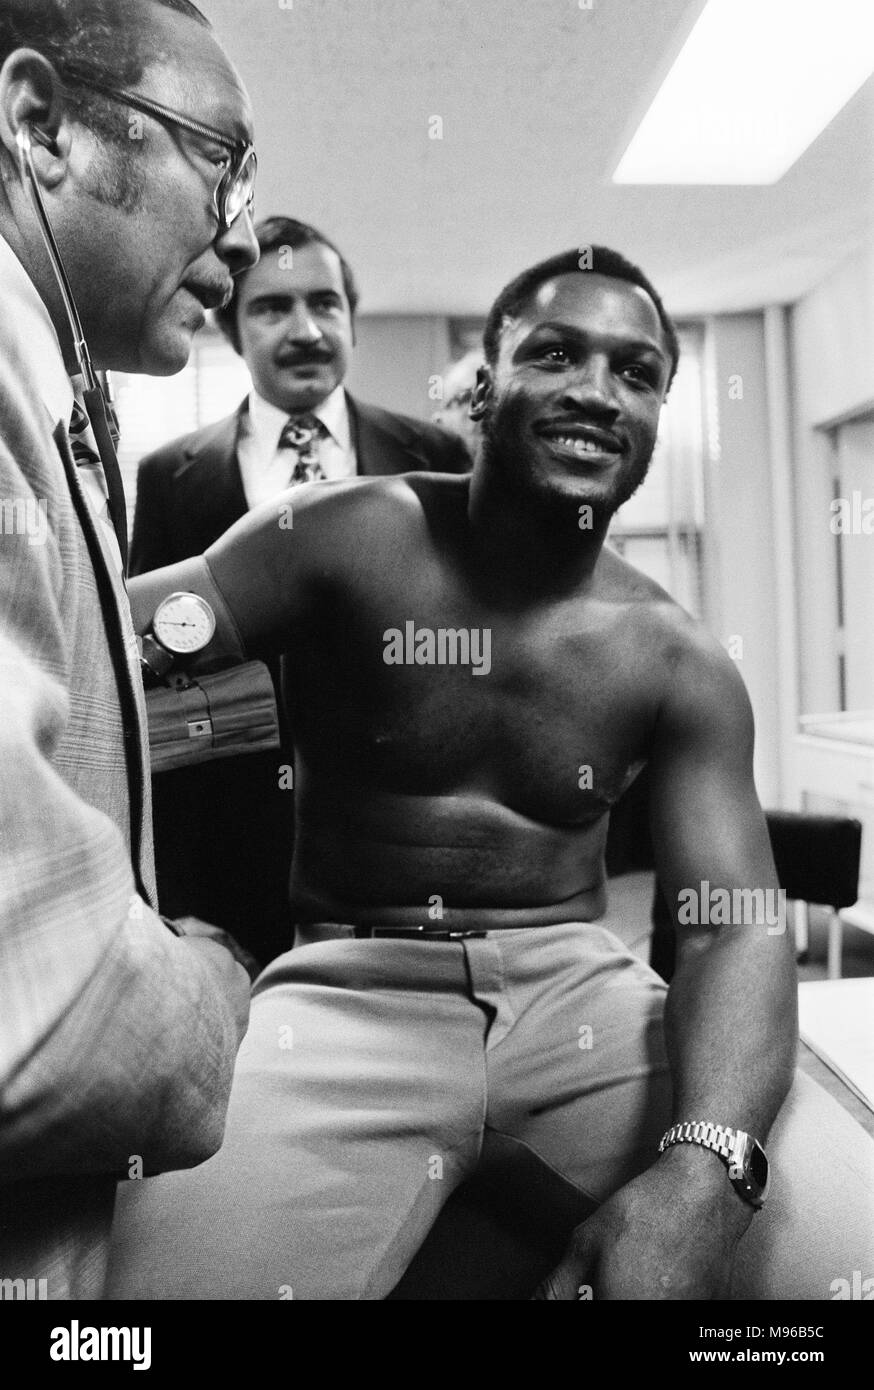 Super Fight II was a non-title boxing match between Muhammad Ali and Joe Frazier. The second of the three Ali vs Frazier bouts, it took place at Madison Square Garden in New York City on January 28, 1974. Ali was a slight favourite to win, and did by a unanimous decision. (Picture) Joe Frazier having a pre-fight medical for 'Super Fight II.' - Stock Image